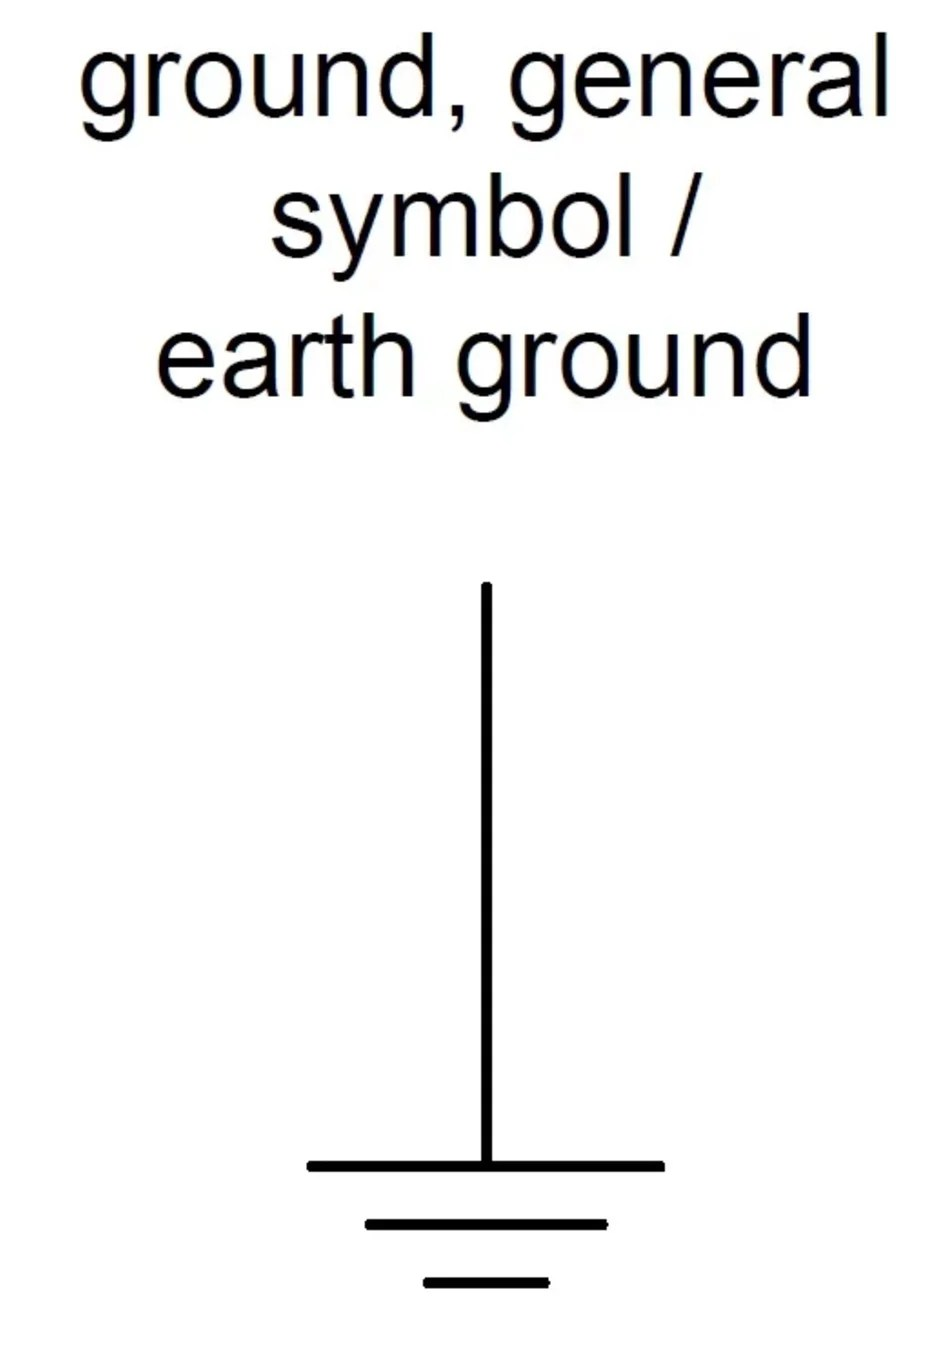 symbol for ground on wiring diagram